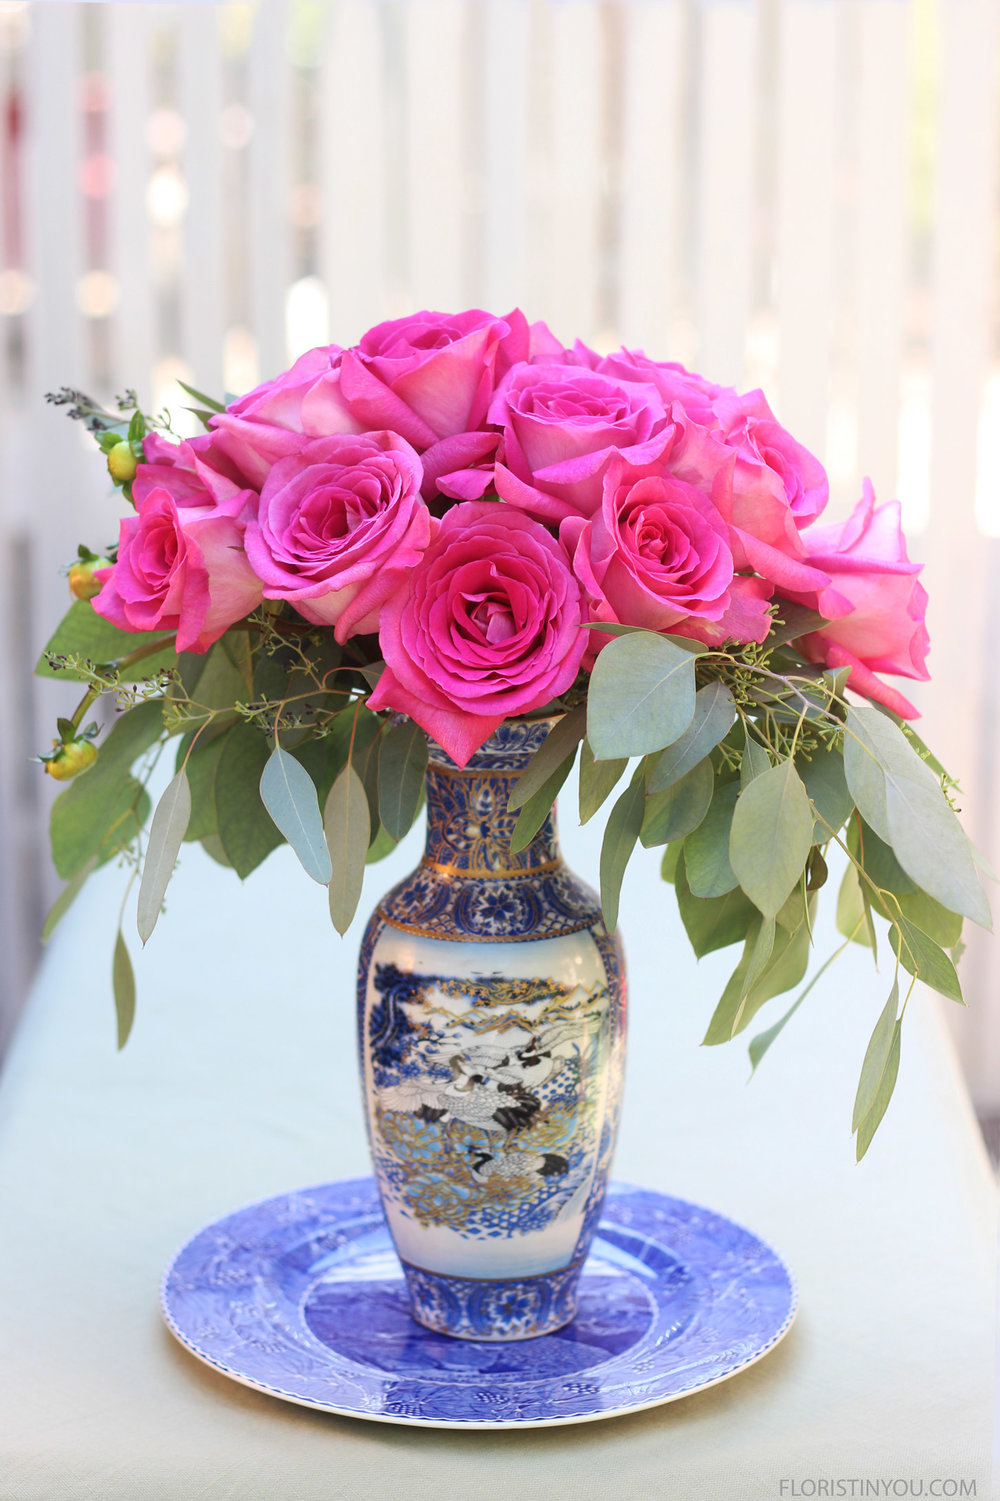 "Roses in a Blue & White Tall Vase                     Normal   0           false   false   false     EN-US   JA   X-NONE                                                                                                                                                                                                                                                                                                                                                                              /* Style Definitions */ table.MsoNormalTable 	{mso-style-name:""Table Normal""; 	mso-tstyle-rowband-size:0; 	mso-tstyle-colband-size:0; 	mso-style-noshow:yes; 	mso-style-priority:99; 	mso-style-parent:""""; 	mso-padding-alt:0in 5.4pt 0in 5.4pt; 	mso-para-margin:0in; 	mso-para-margin-bottom:.0001pt; 	mso-pagination:widow-orphan; 	font-size:12.0pt; 	font-family:Cambria; 	mso-ascii-font-family:Cambria; 	mso-ascii-theme-font:minor-latin; 	mso-hansi-font-family:Cambria; 	mso-hansi-theme-font:minor-latin;}"